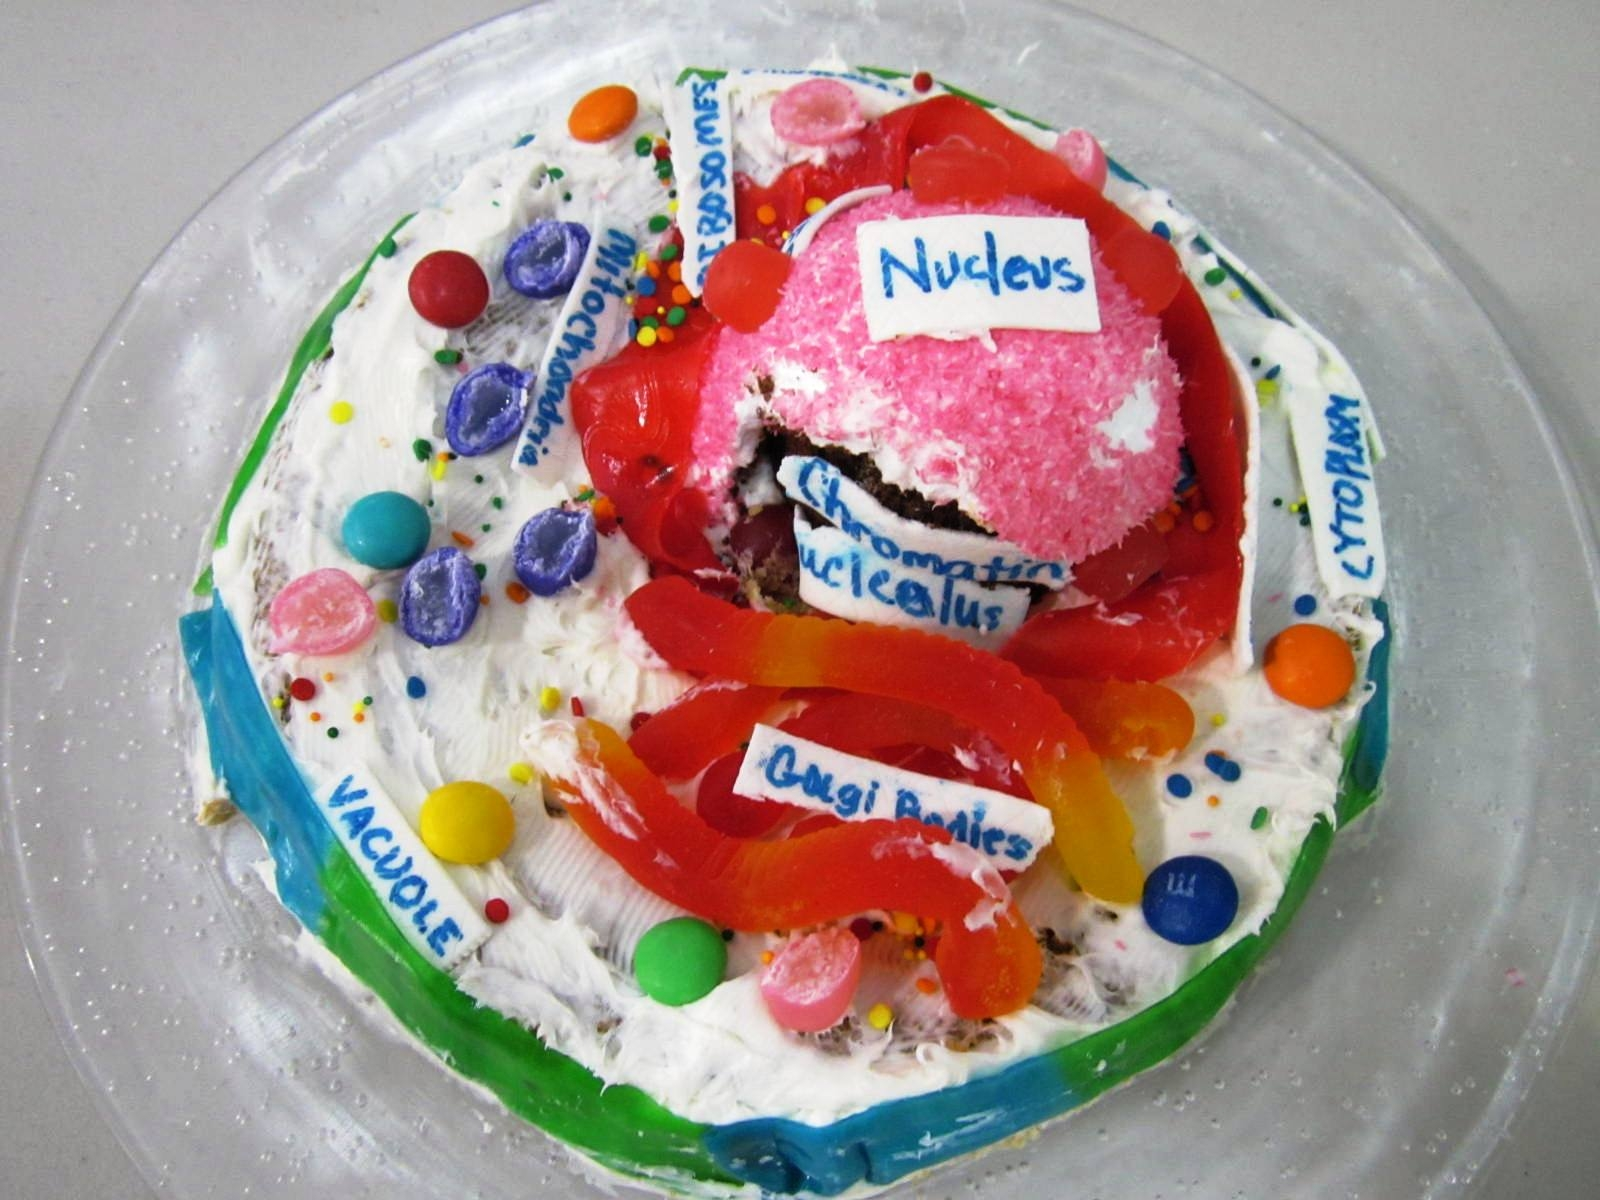 Plant Cell Project with Jello http://scienceandtechnologylady.blogspot.com/2012/01/edible-science-model-projects-part-2.html